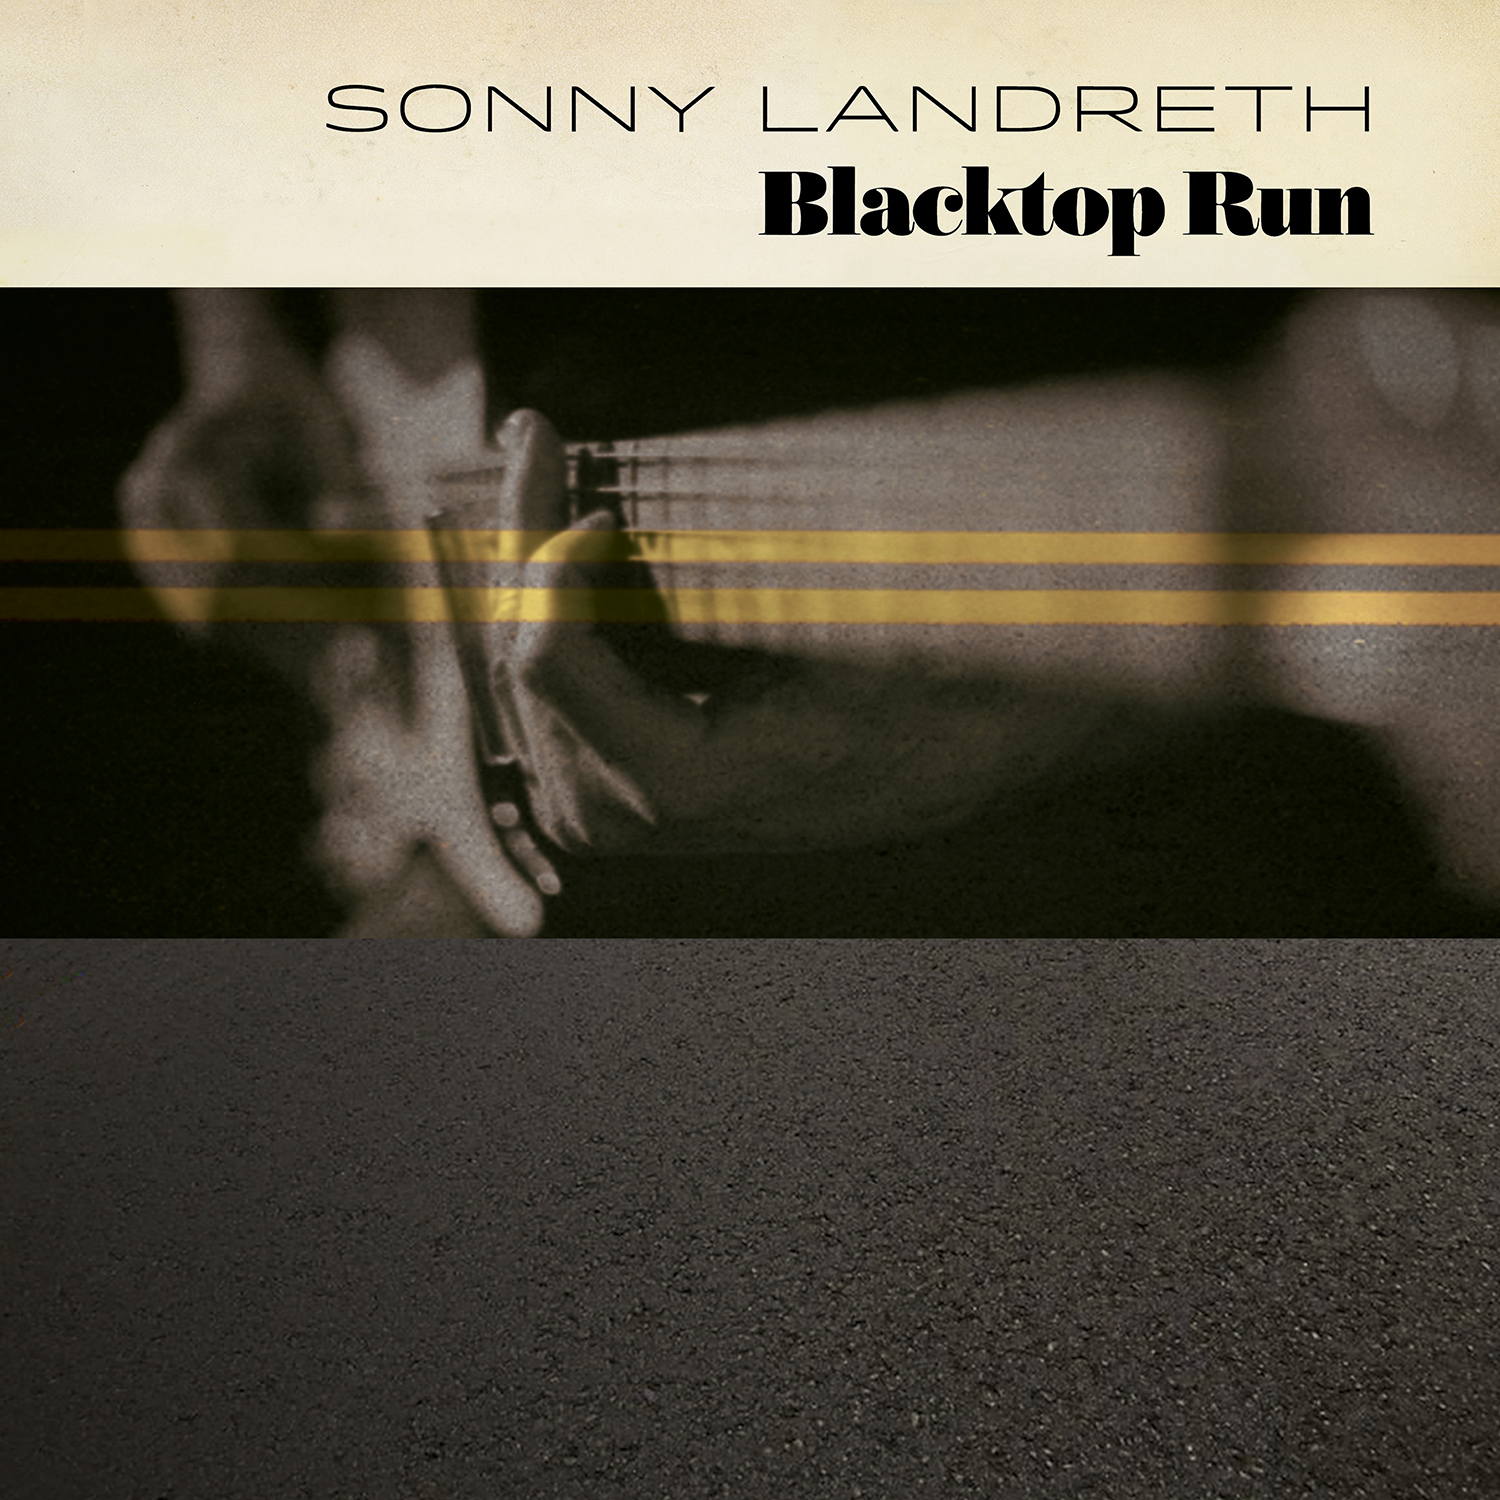 <h5>Sonny Landreth<br>Blacktop Run</h5>